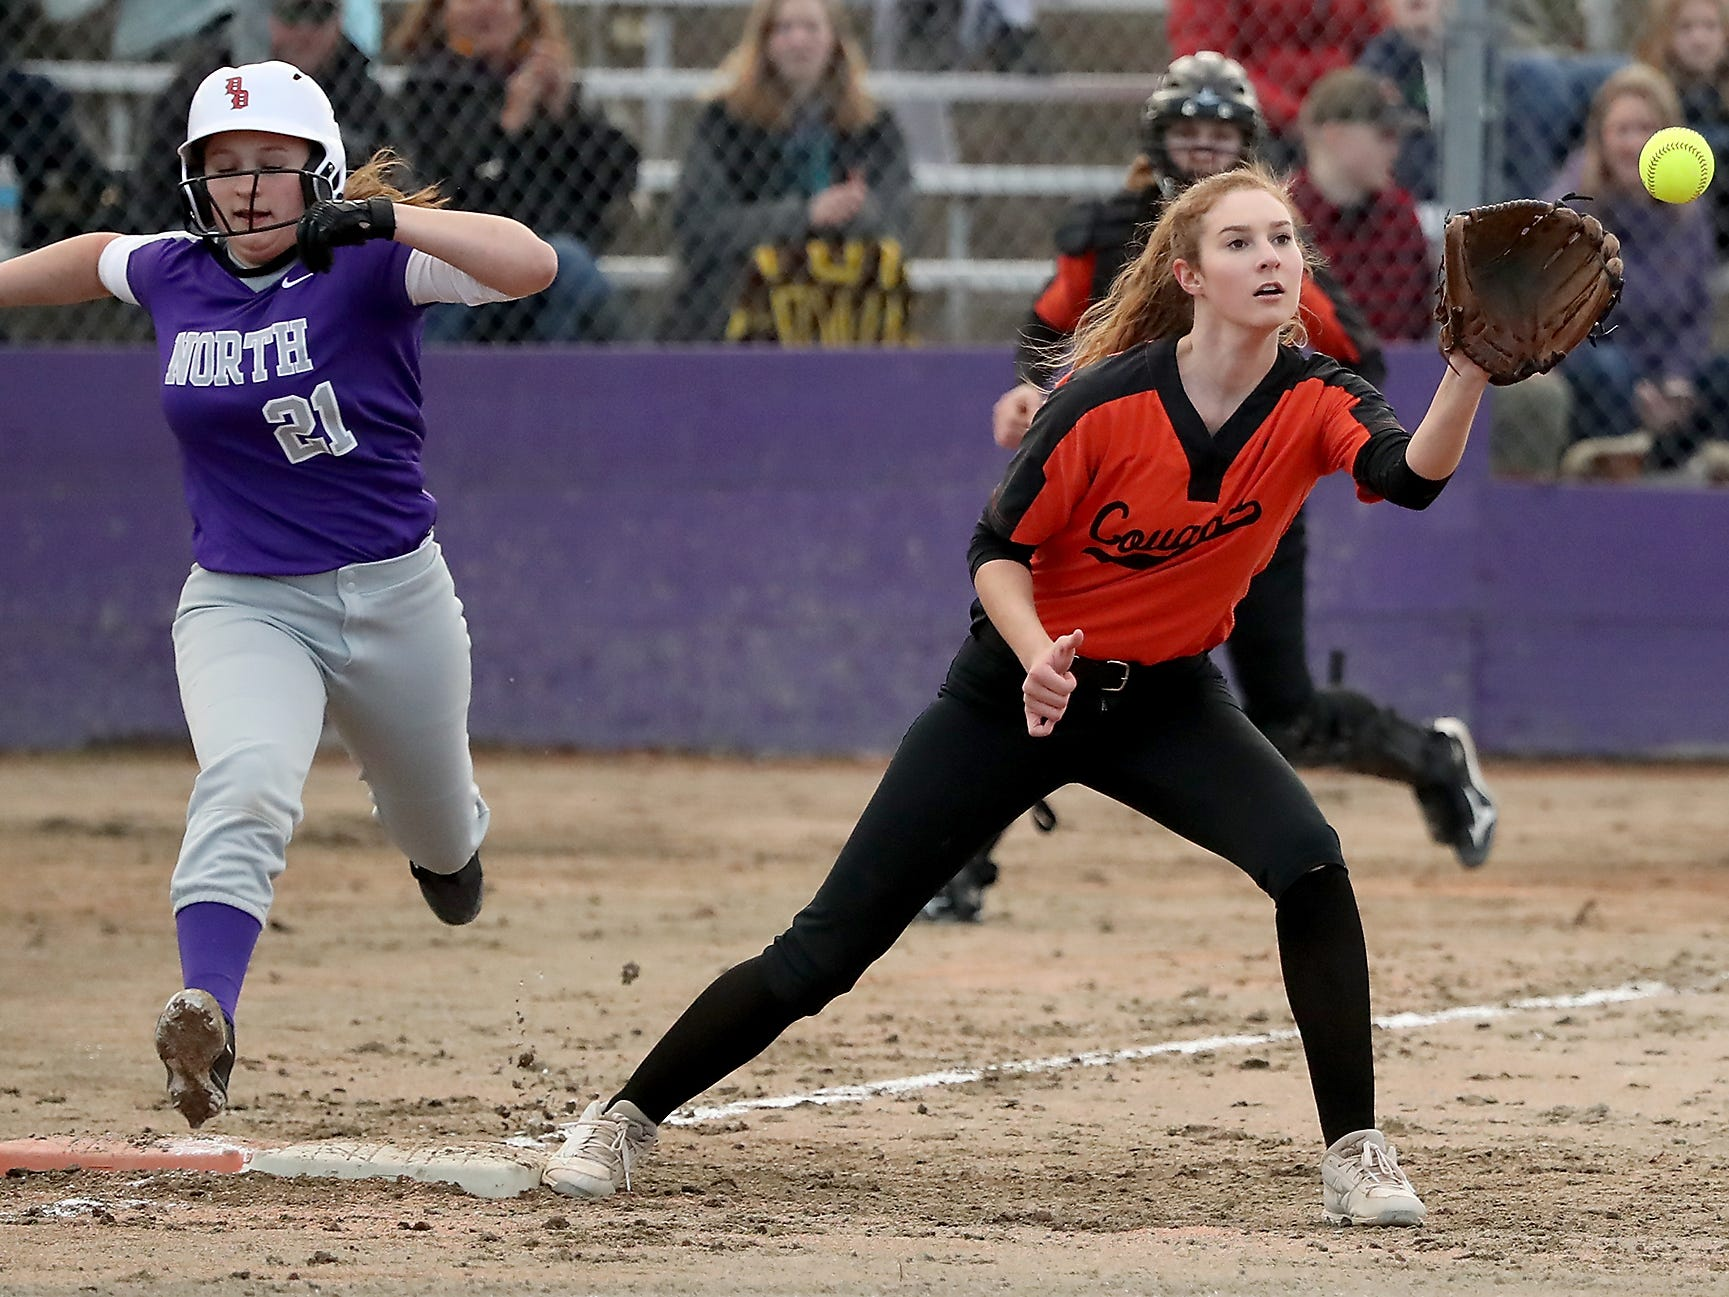 Central Kitsap's Annika Freund (right) makes the catch in time and North Kitsap's Iyreland Lawson is out at first during their game in Poulsbo on Wednesday, March 13, 2019.